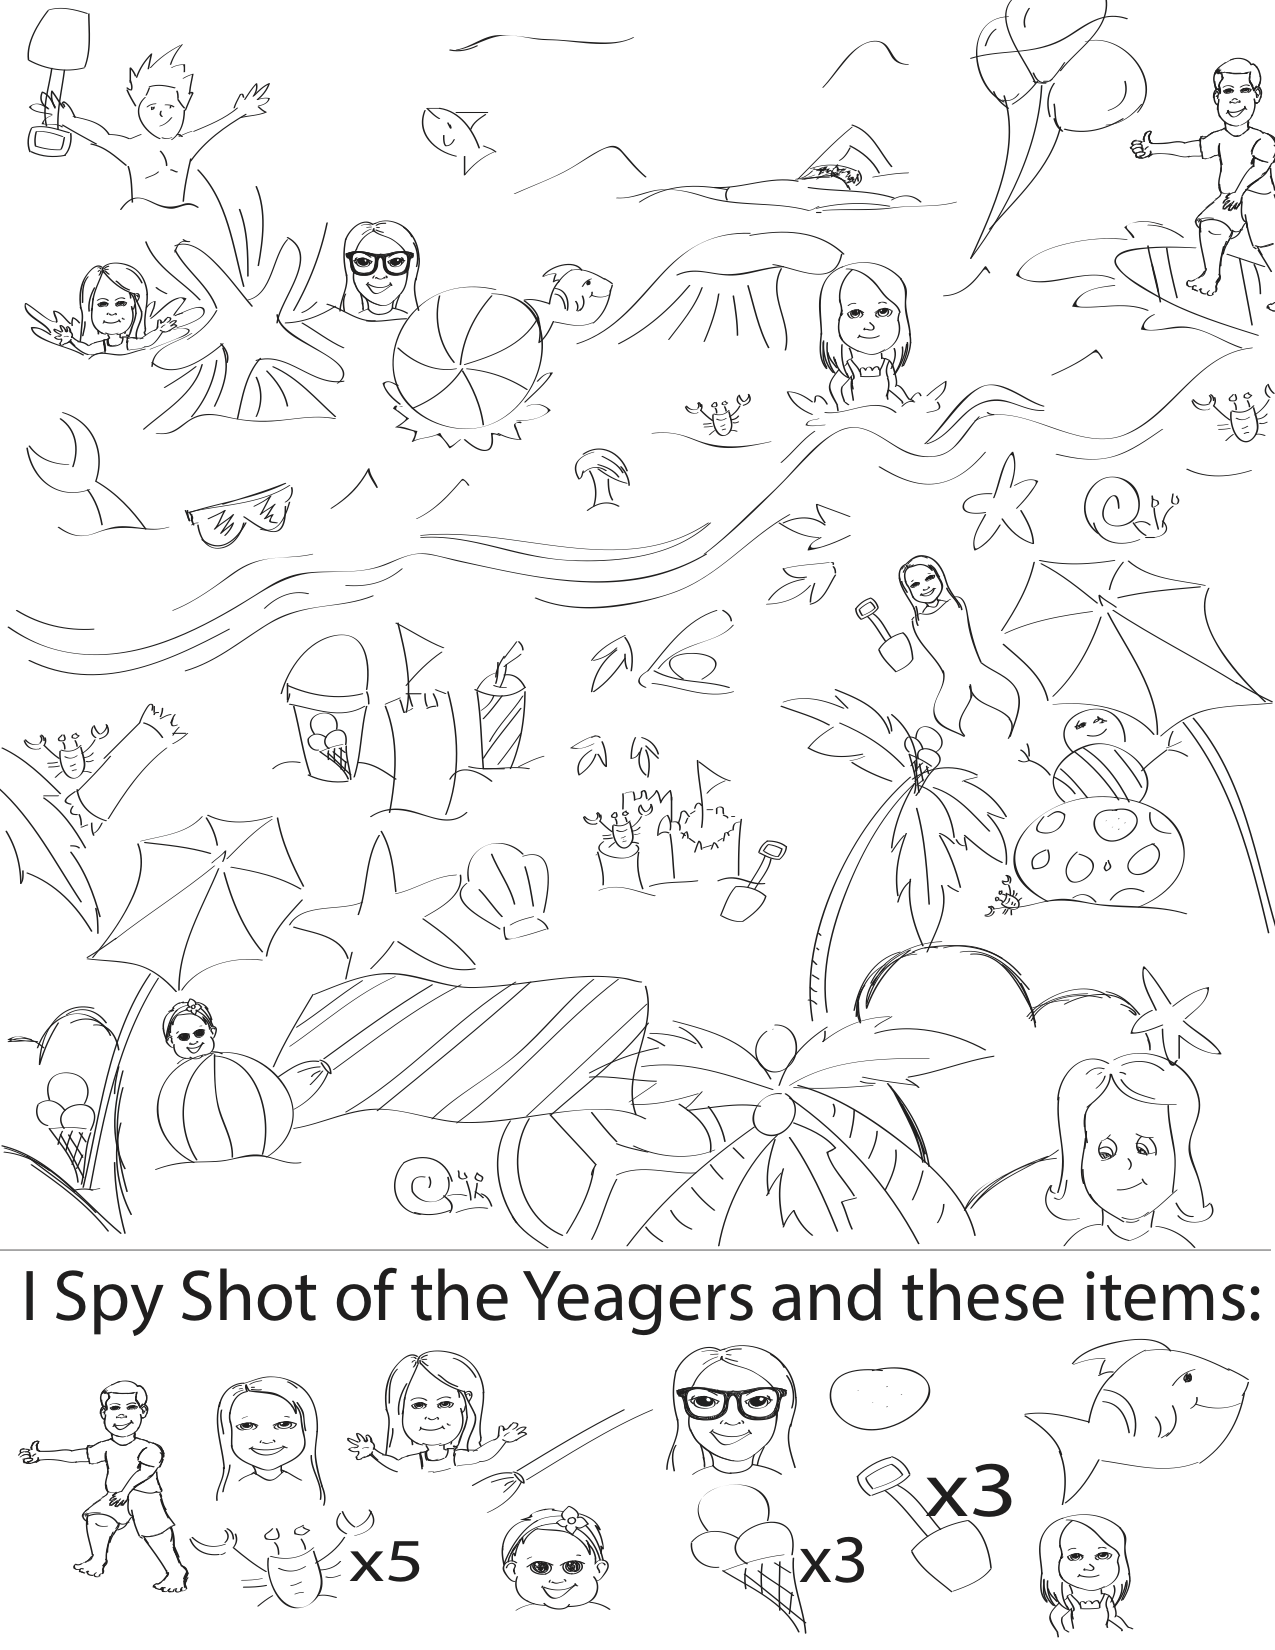 Shotoftheyeagers com coloring page